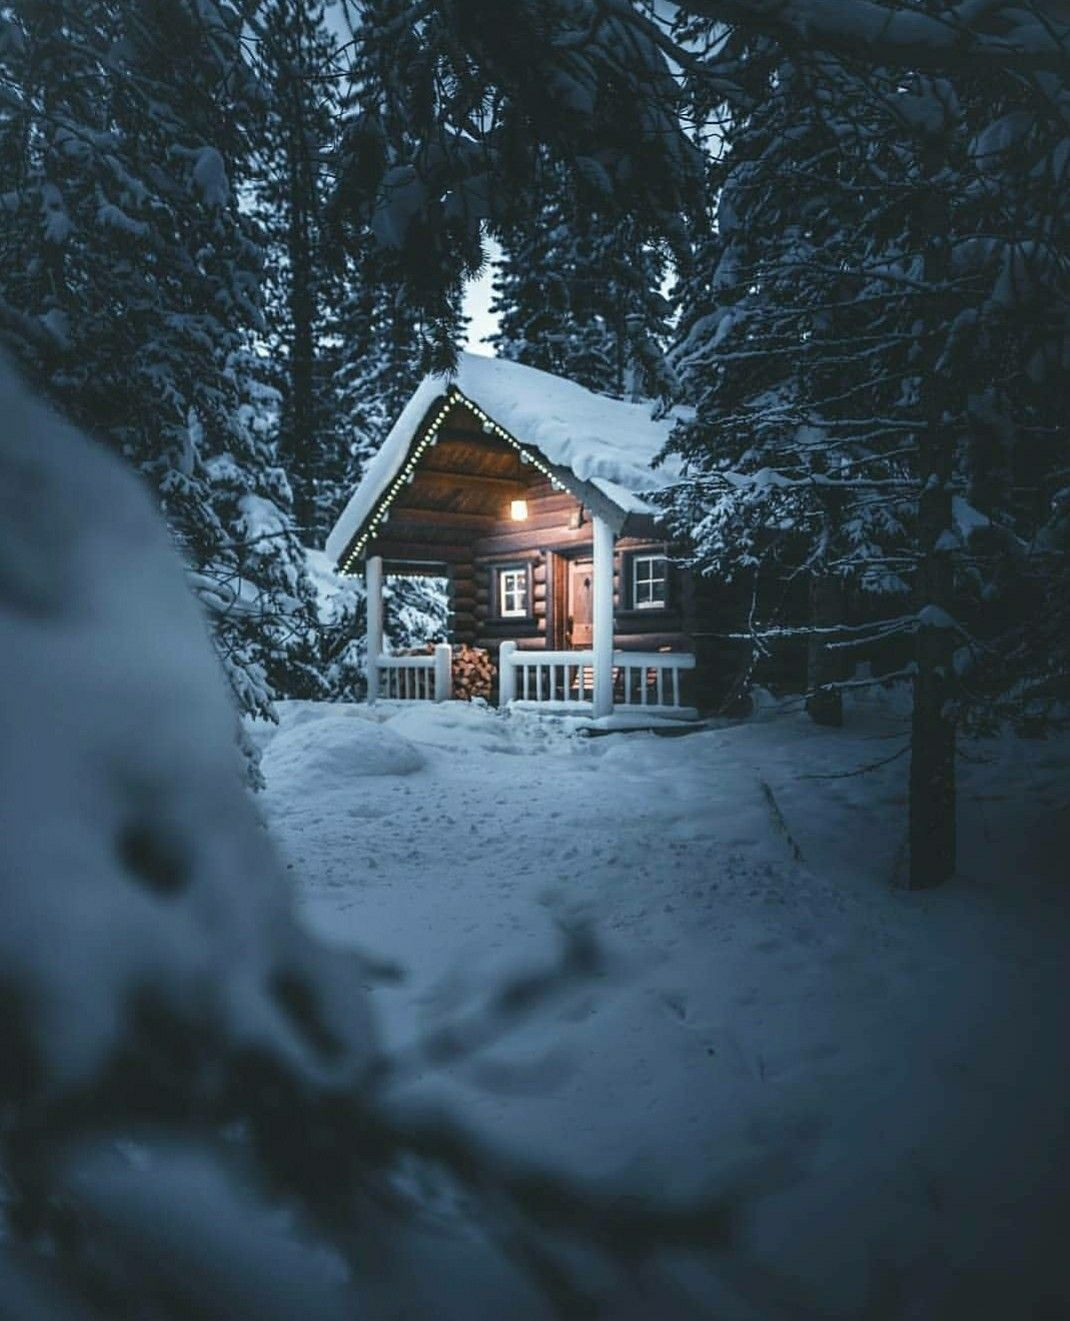 Exciting Concepts To Build Your Beautiful Log Cabin In The Mountains Or Next To A Creek A Must Have To Get Awa Log Cabin Homes Cabins And Cottages Cabin Homes